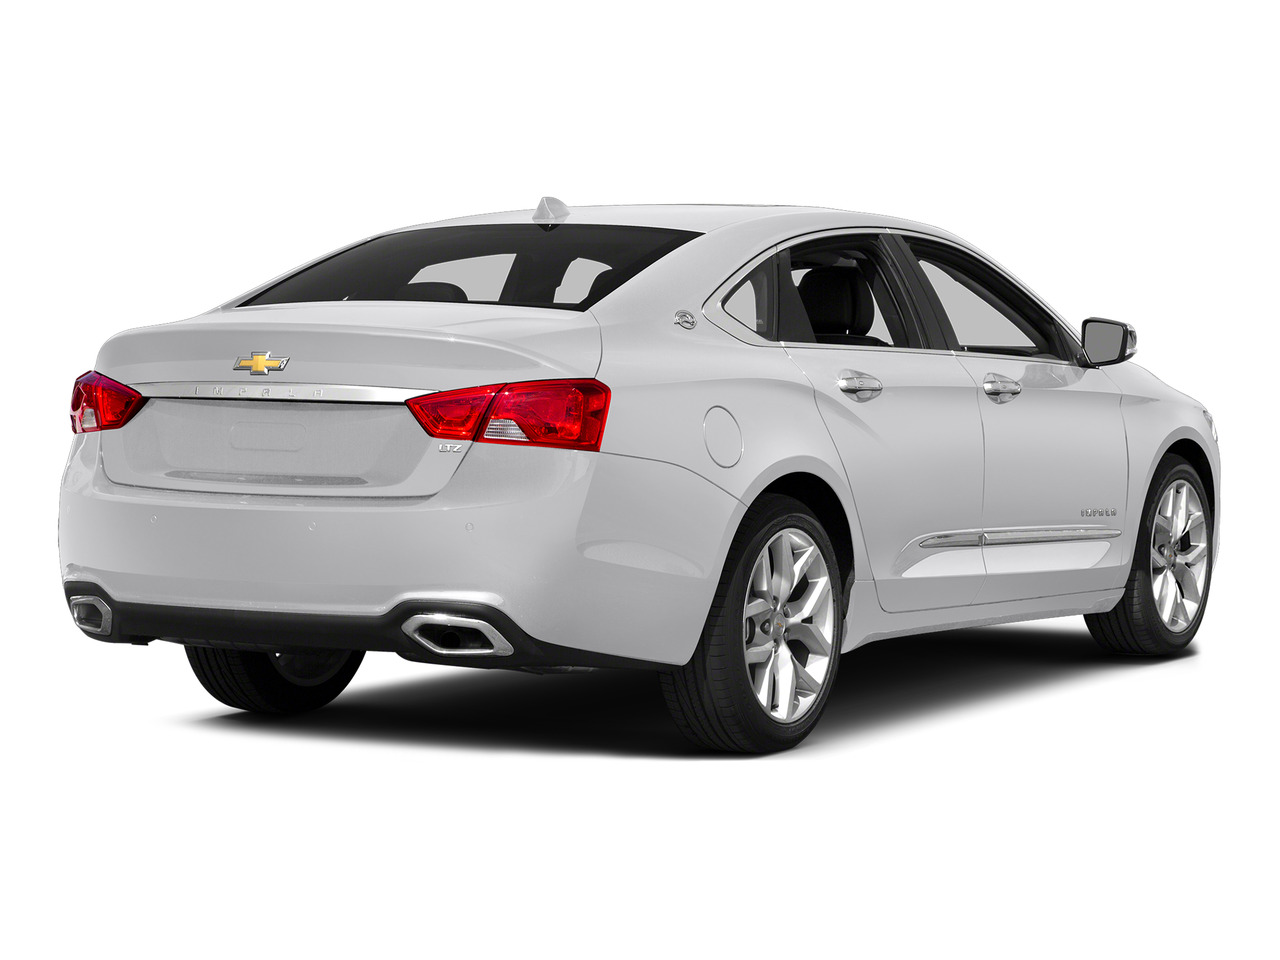 2015 Chevrolet Impala LT Lexington NC